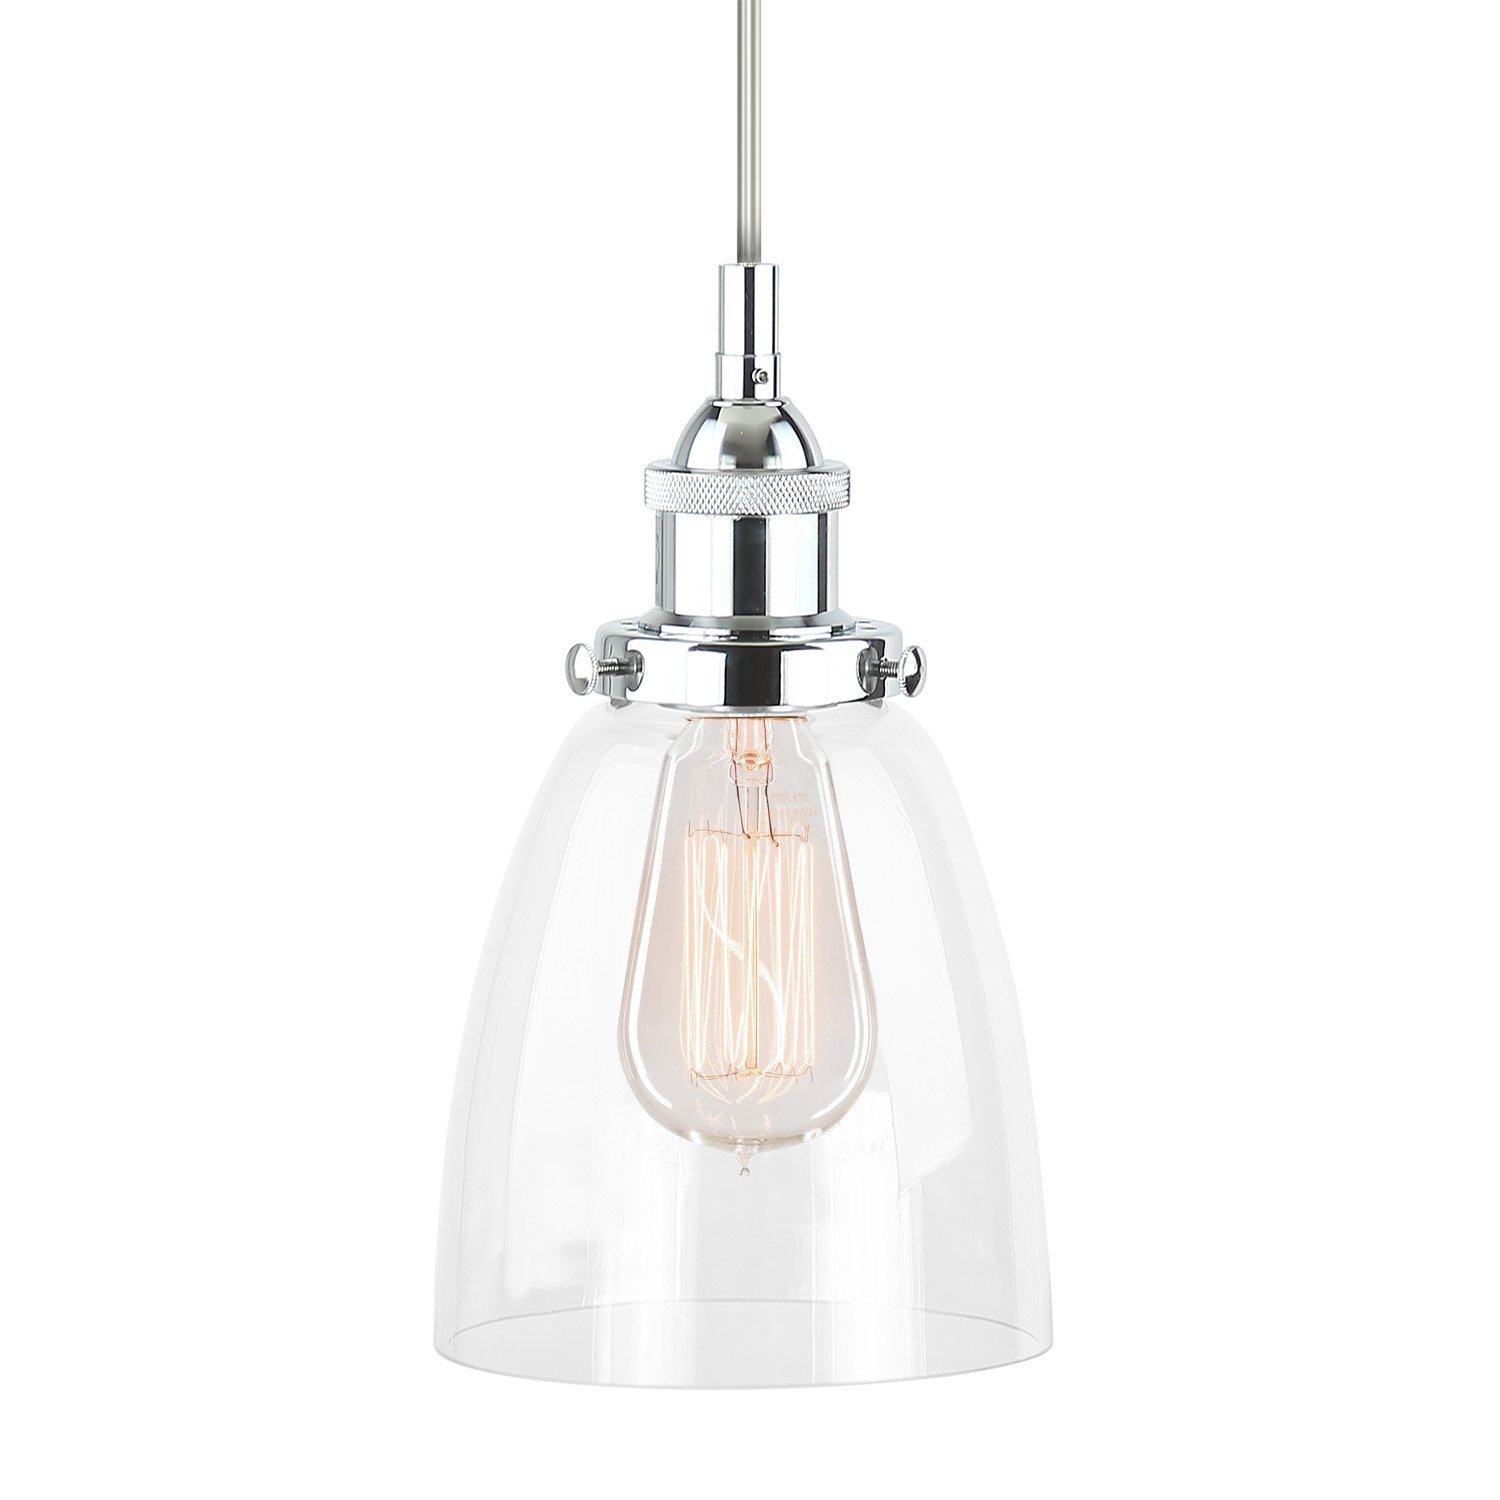 Fiorentino polished chrome one light industrial factory pendant fiorentino polished chrome one light industrial factory pendant lamp with clear glass shade linea di liara ll p281 pc amazon aloadofball